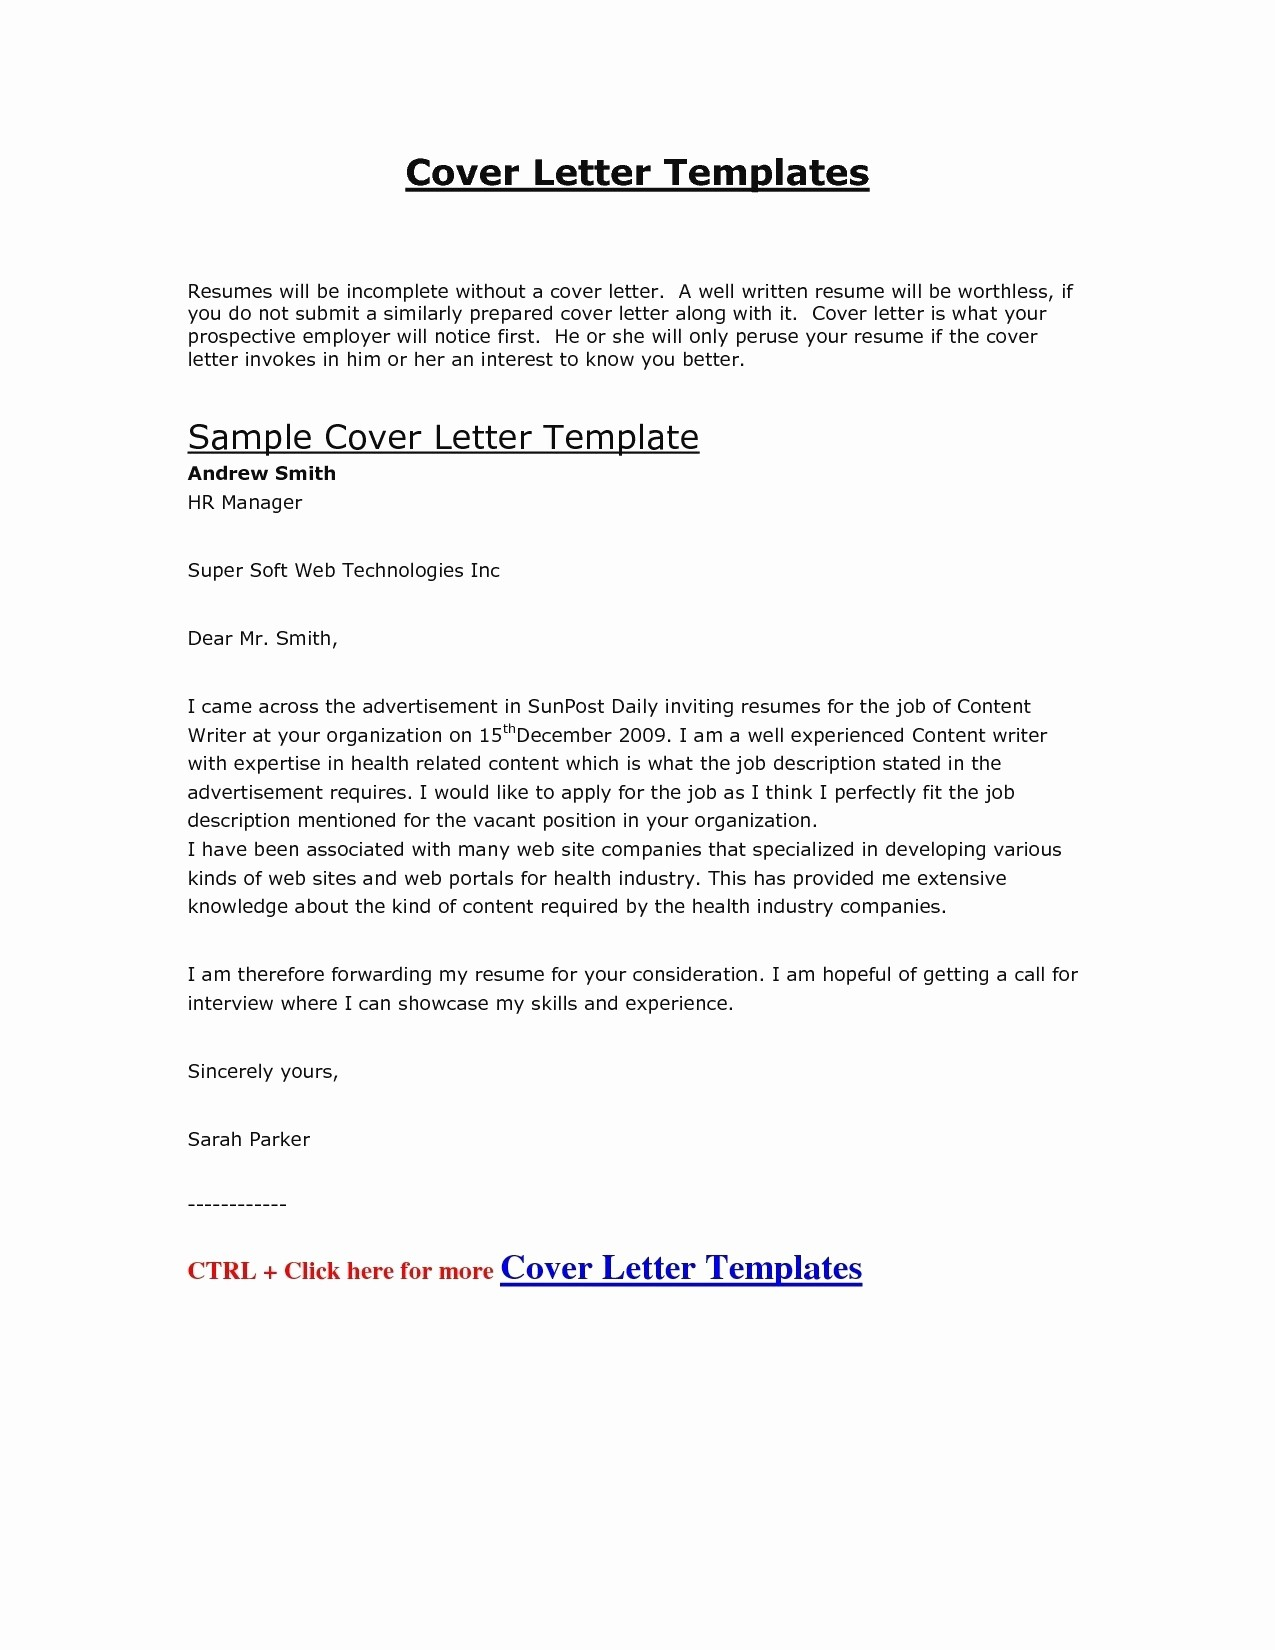 Formal Letter format Template - Job Application Letter format Template Copy Cover Letter Template Hr